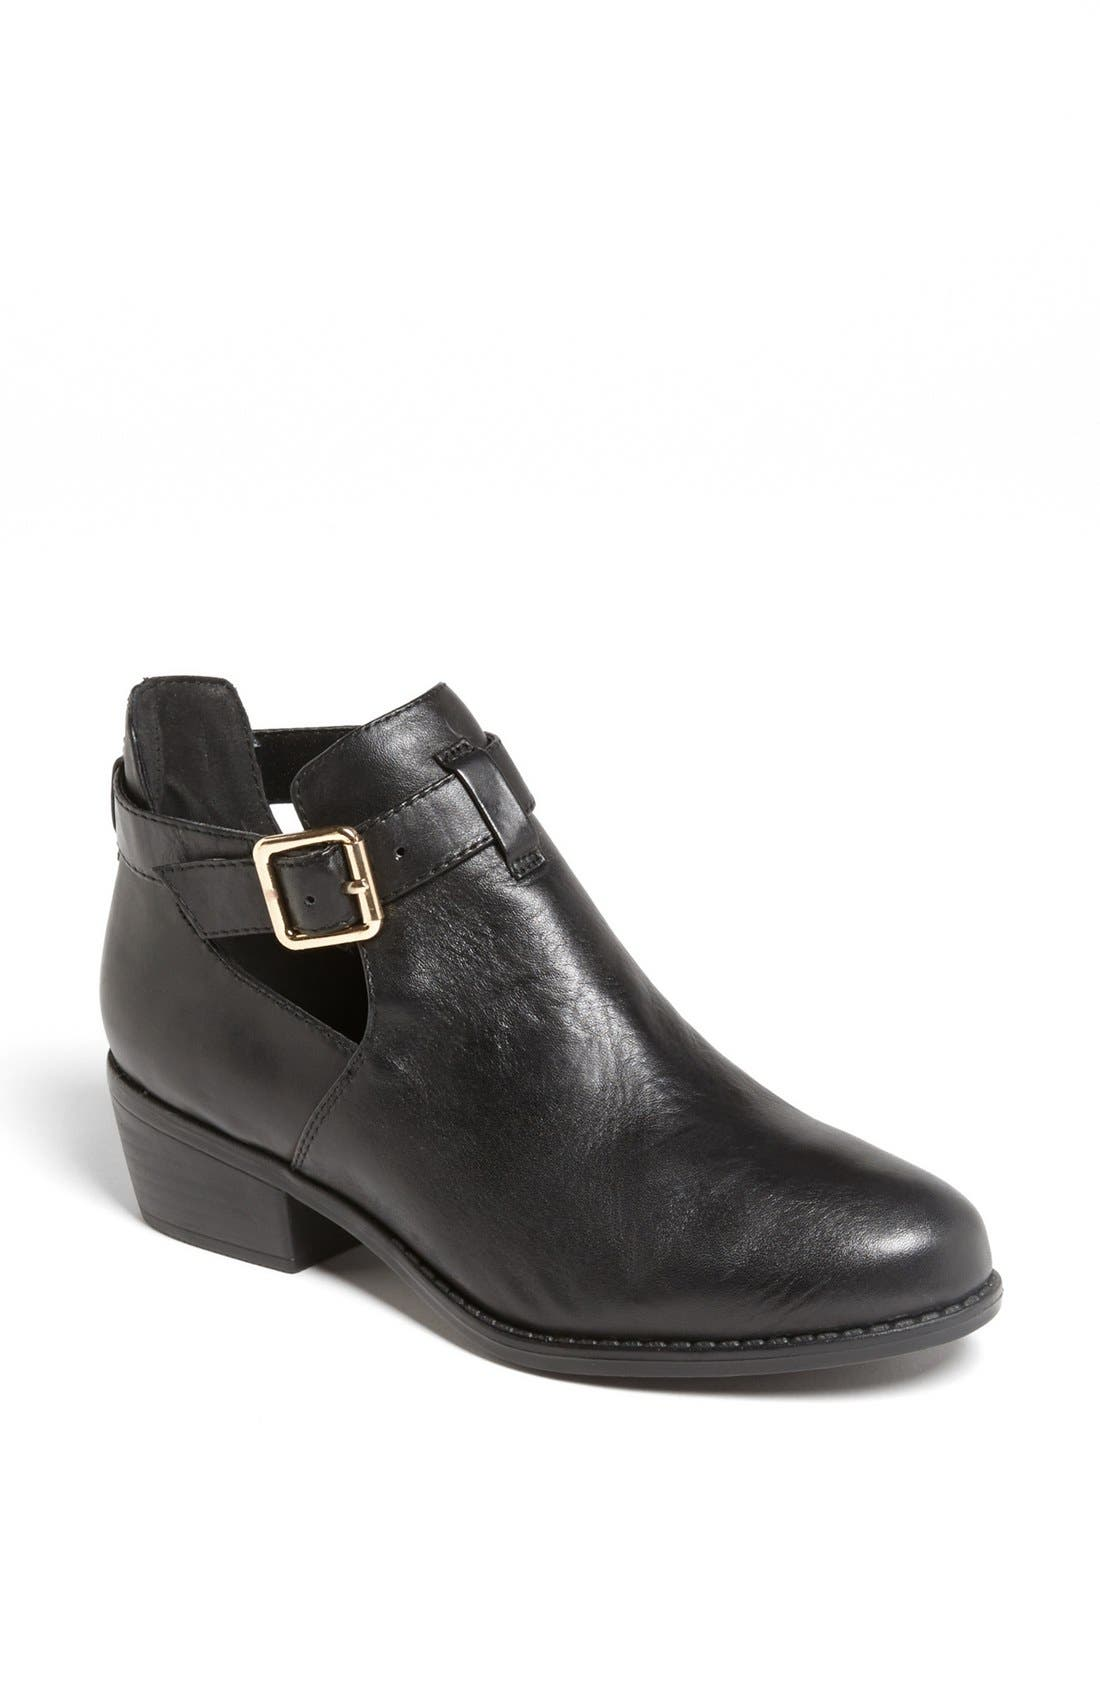 Main Image - Topshop 'Monti' Boot